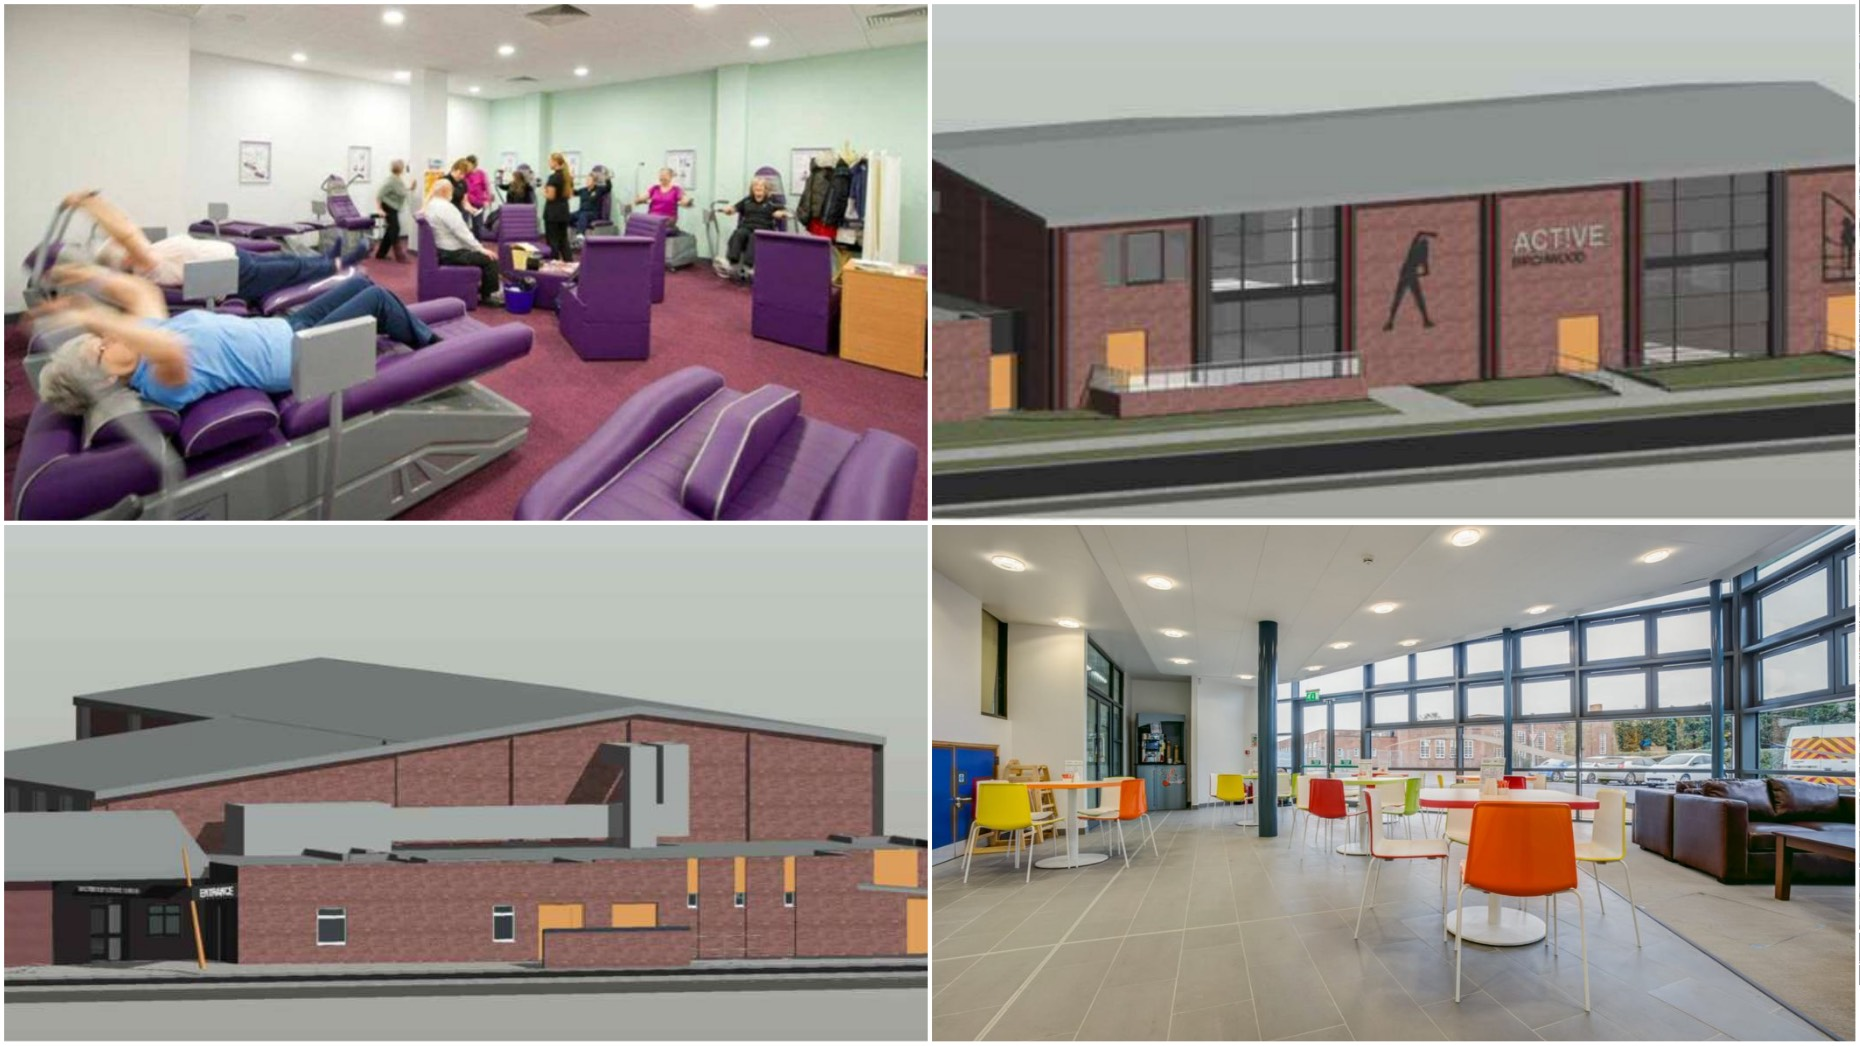 New images Work to begin straight away on £1 4m Birchwood Leisure